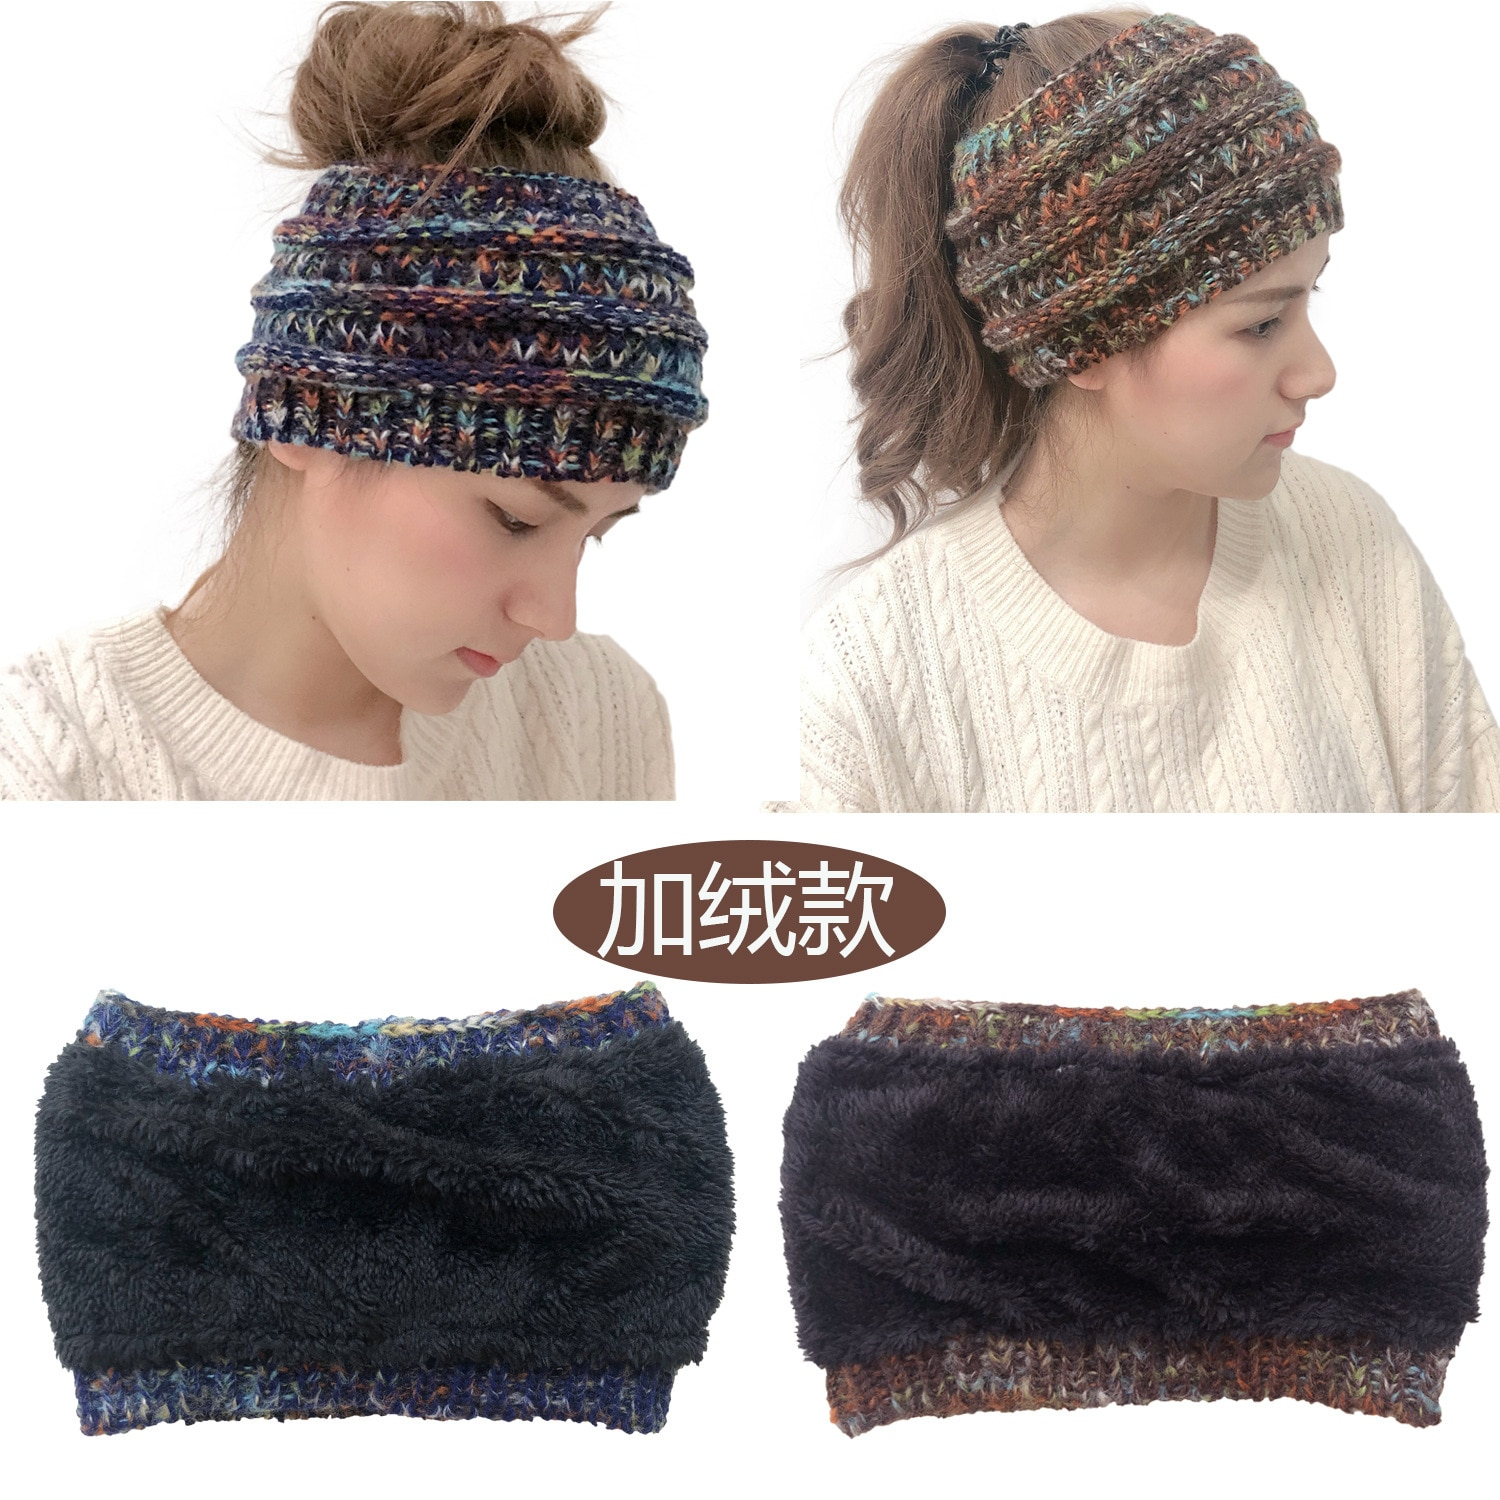 New Knitted Ponytail and Velvet Hat for Men Women Color Striped Warm Woolen